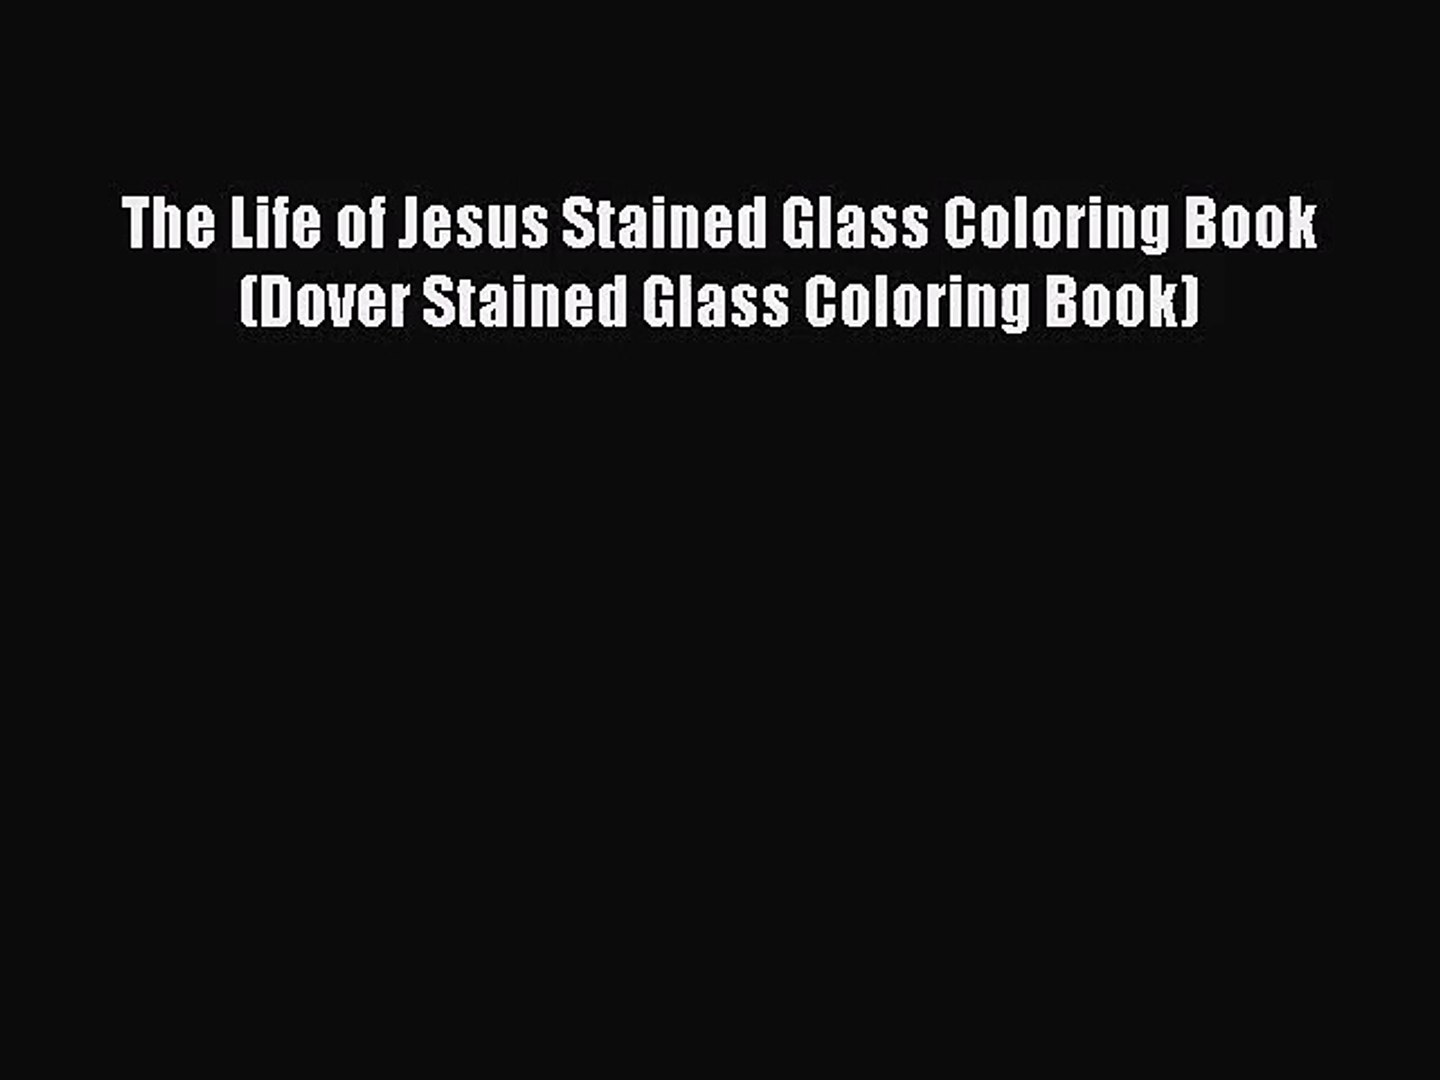 PDF Download The Life of Jesus Stained Glass Coloring Book (Dover Stained Glass Coloring Book)